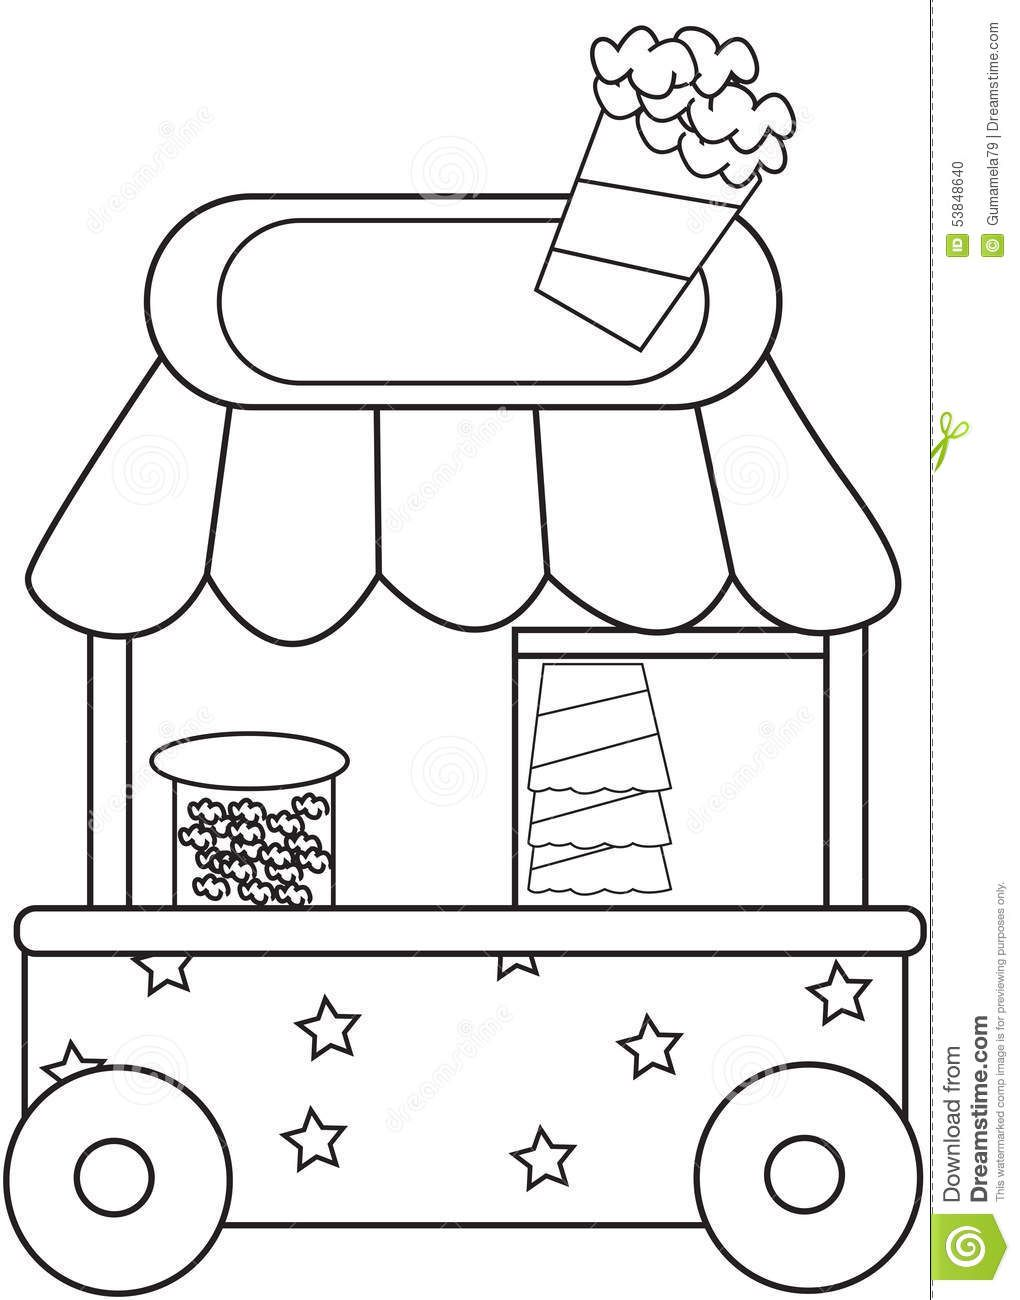 Stock Photo Popcorn Stand Coloring Page Image 53848640